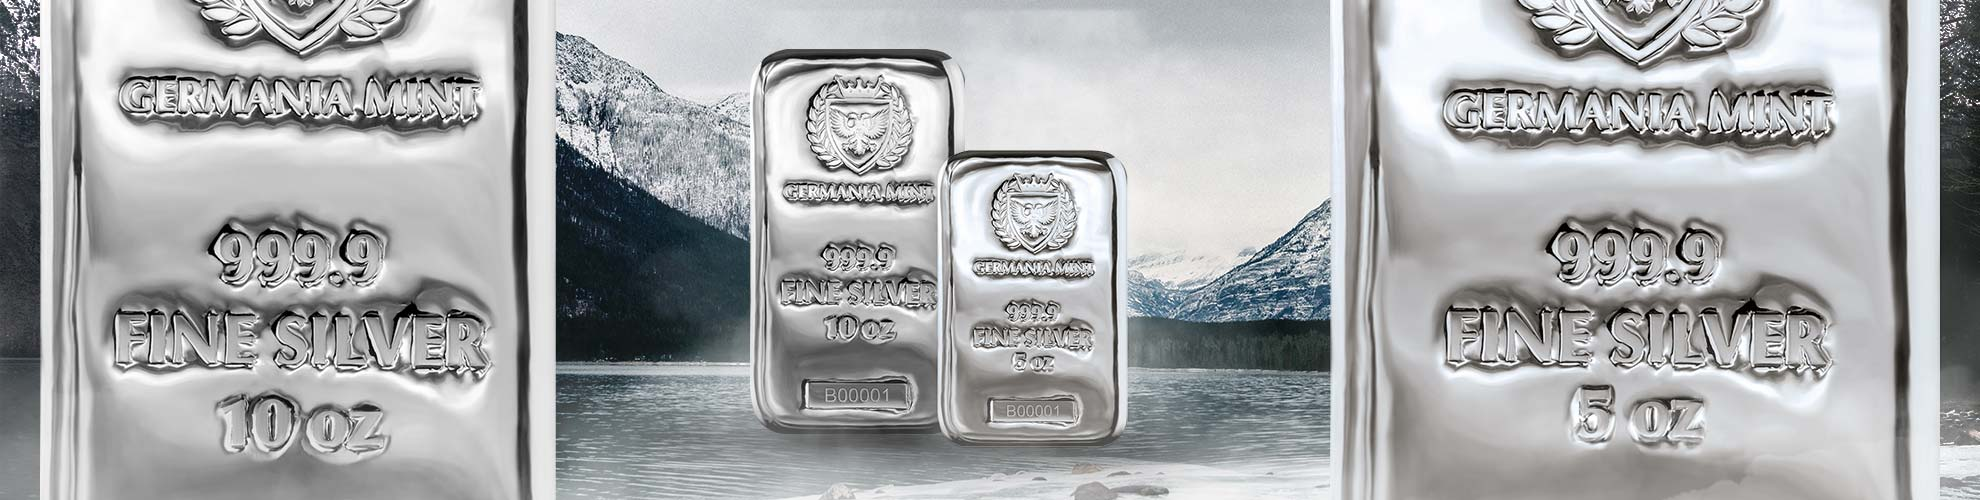 Germania Mint Silver Bars